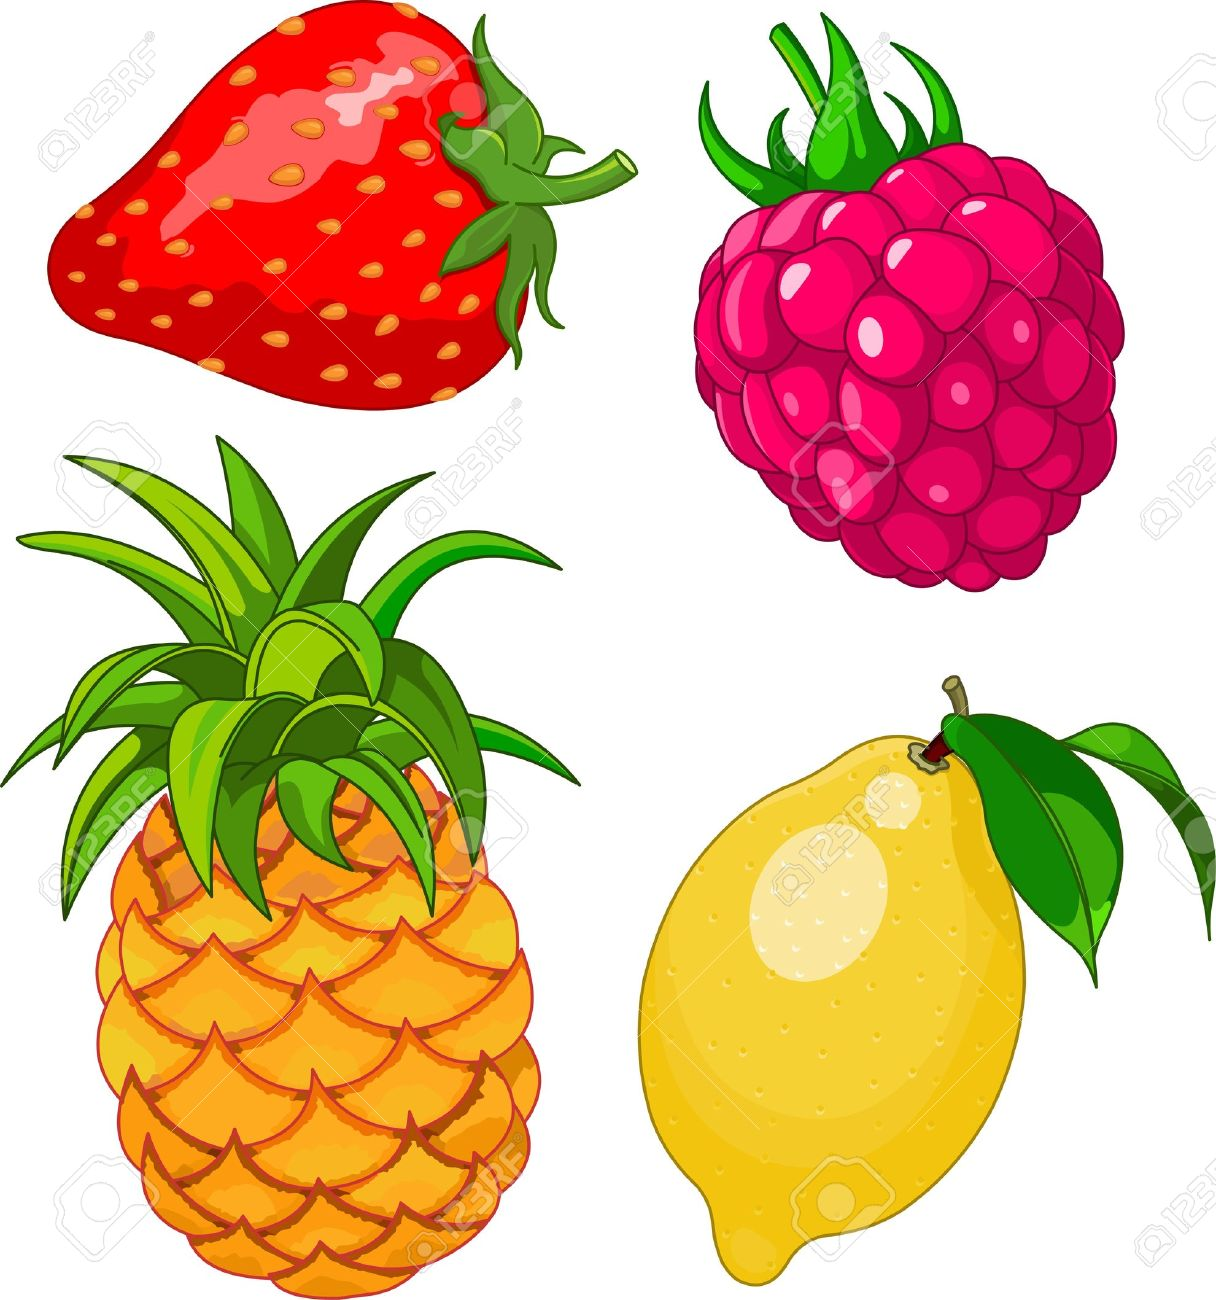 Clip Art Strawberry Stock Photos Images. Royalty Free Clip Art ...